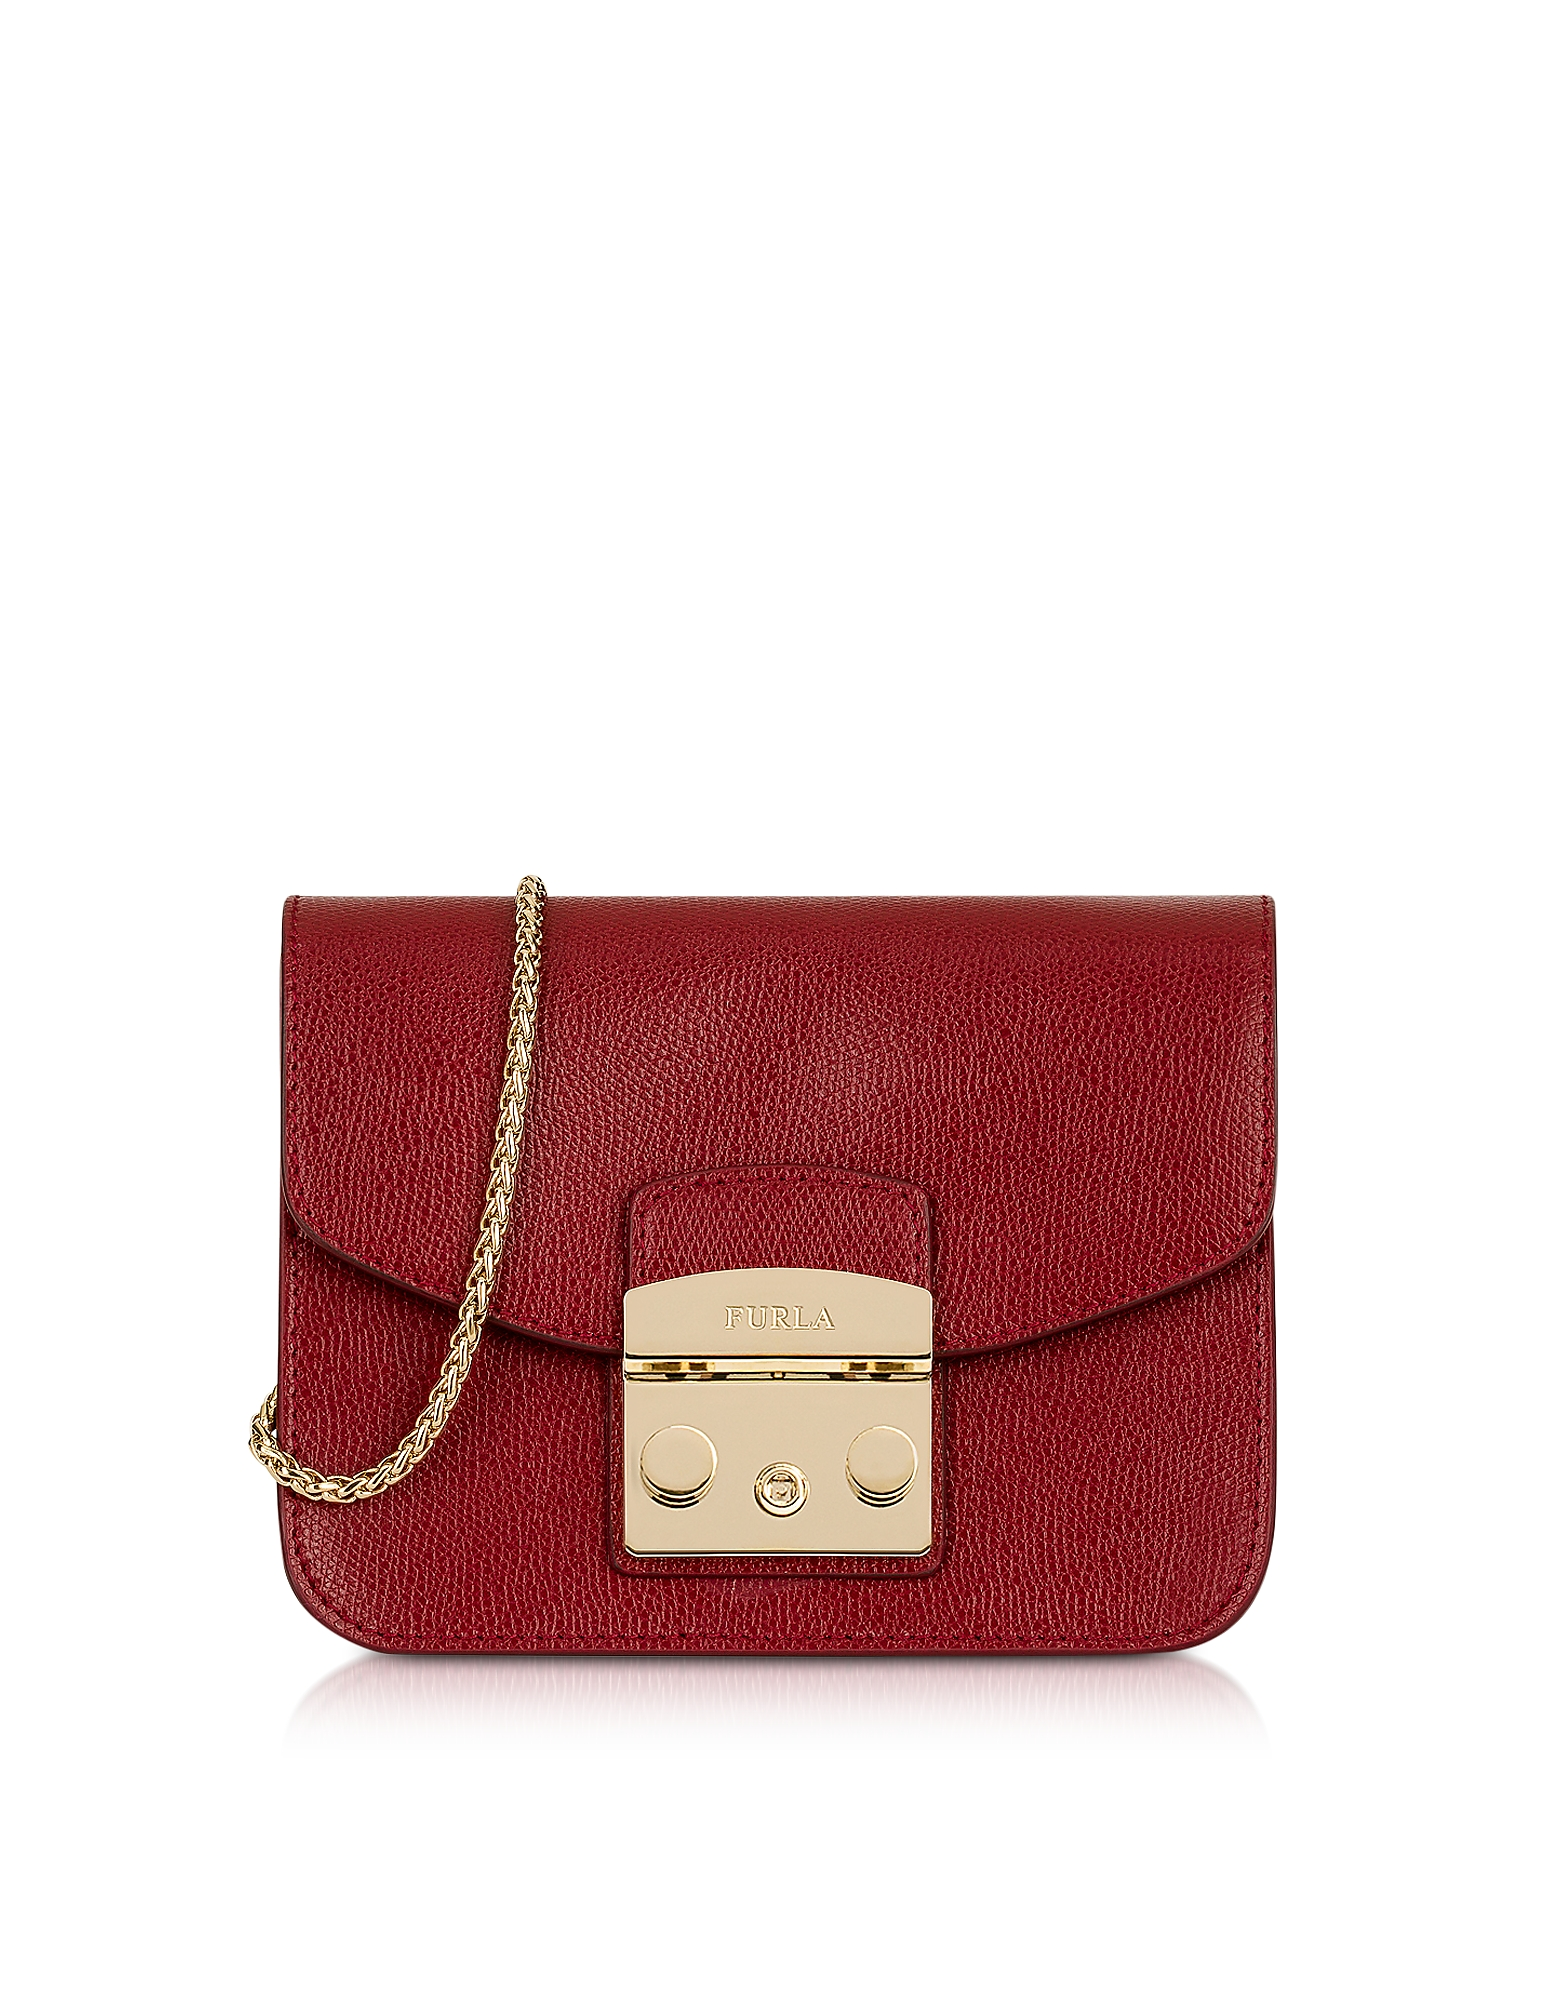 Furla Handbags, Cherry Leather Metropolis Mini Crossbody Bag